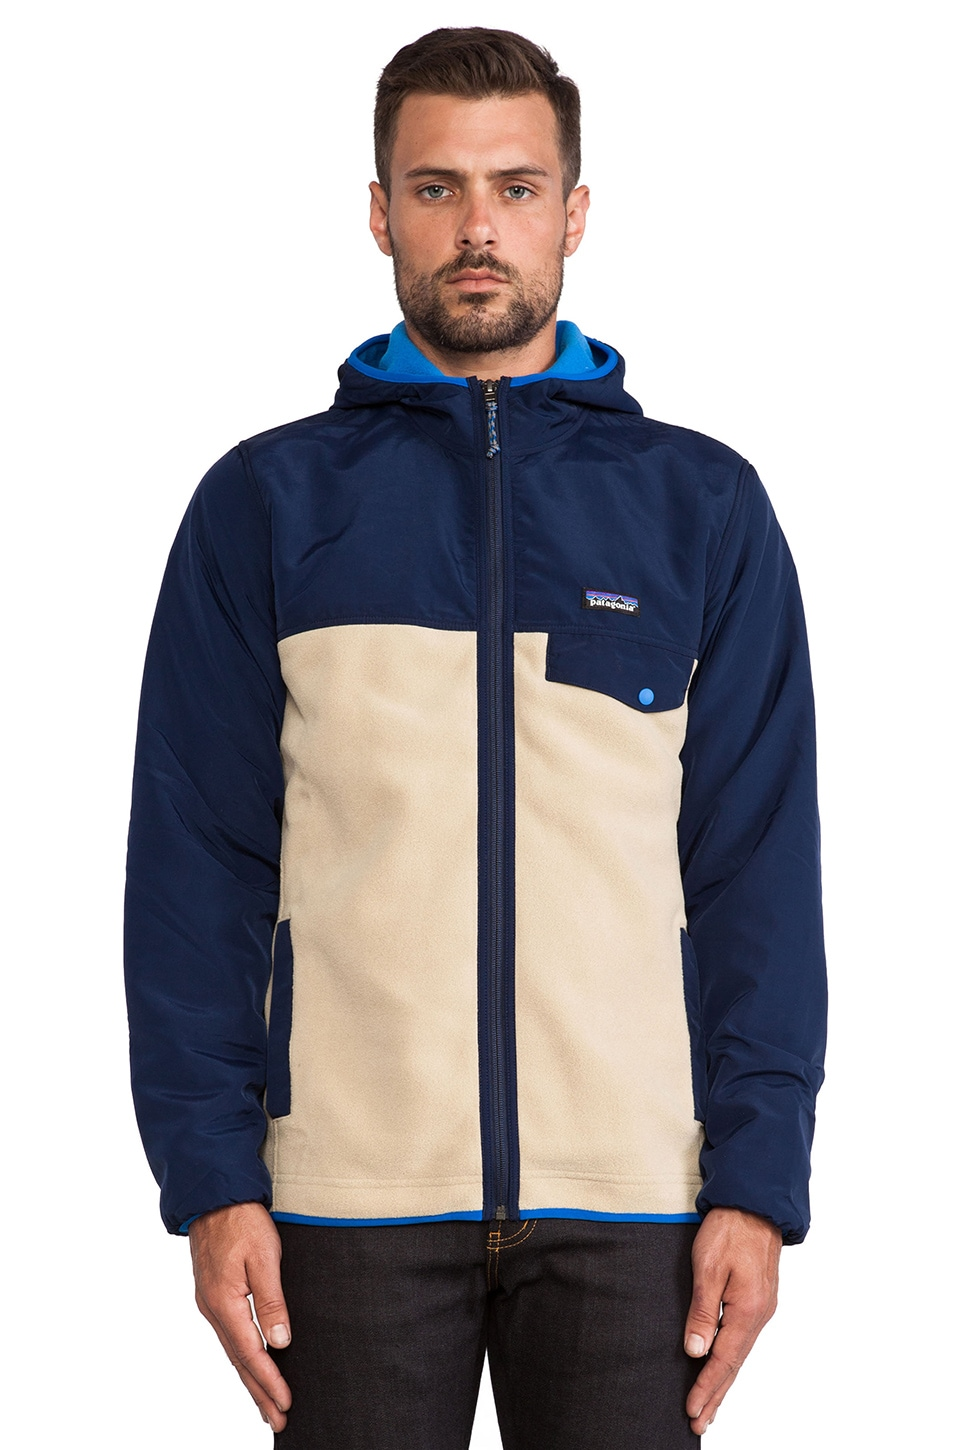 Patagonia Shelled Synchilla Snap-T Hoody in El Cap Khaki & Classic Navy